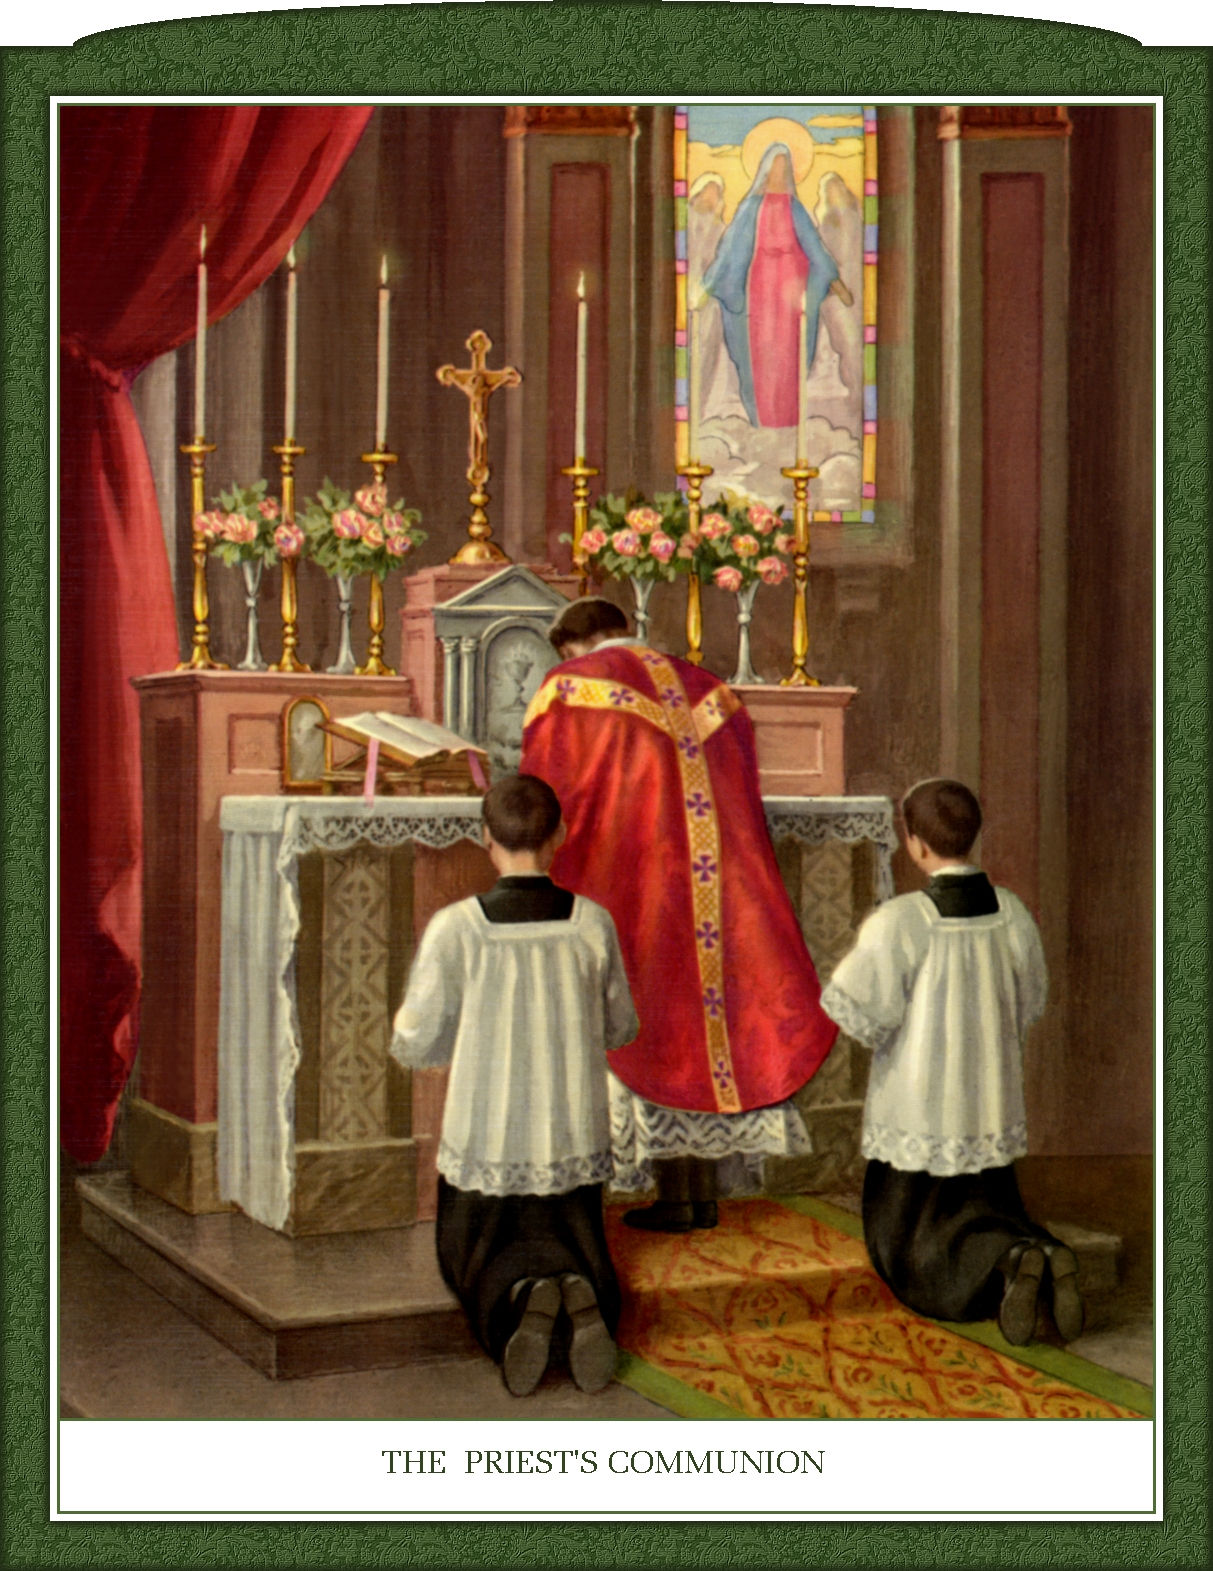 TRADITIONAL ROMAN MASS IN PICTURES